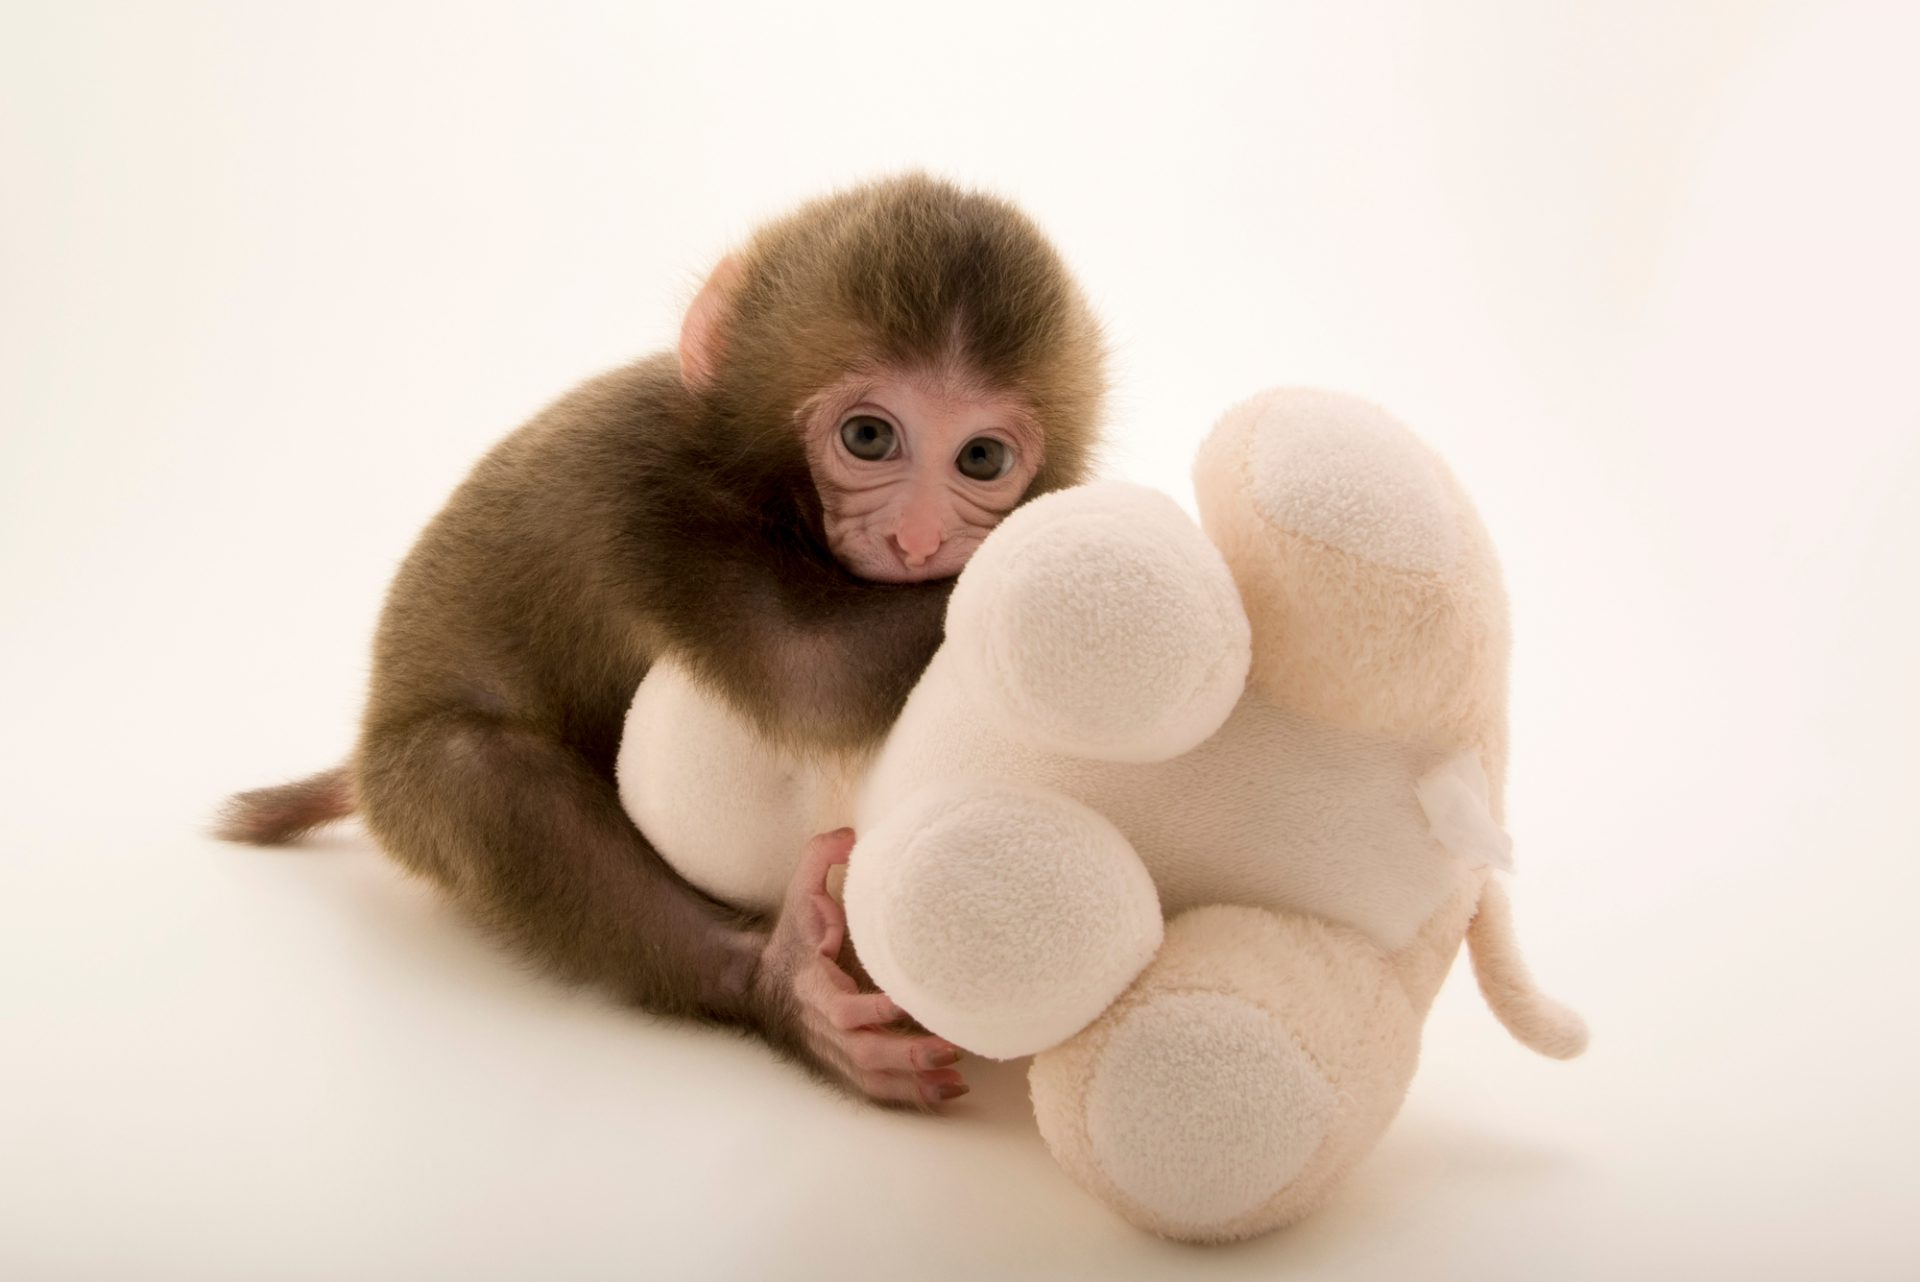 Photo: Gigi, a two-week-old Japanese macaque (Macaca fuscata) at the Blank Park Zoo in Des Moines, IA. She is being hand-raised for the first couple months because her mom wouldn't nurse her.